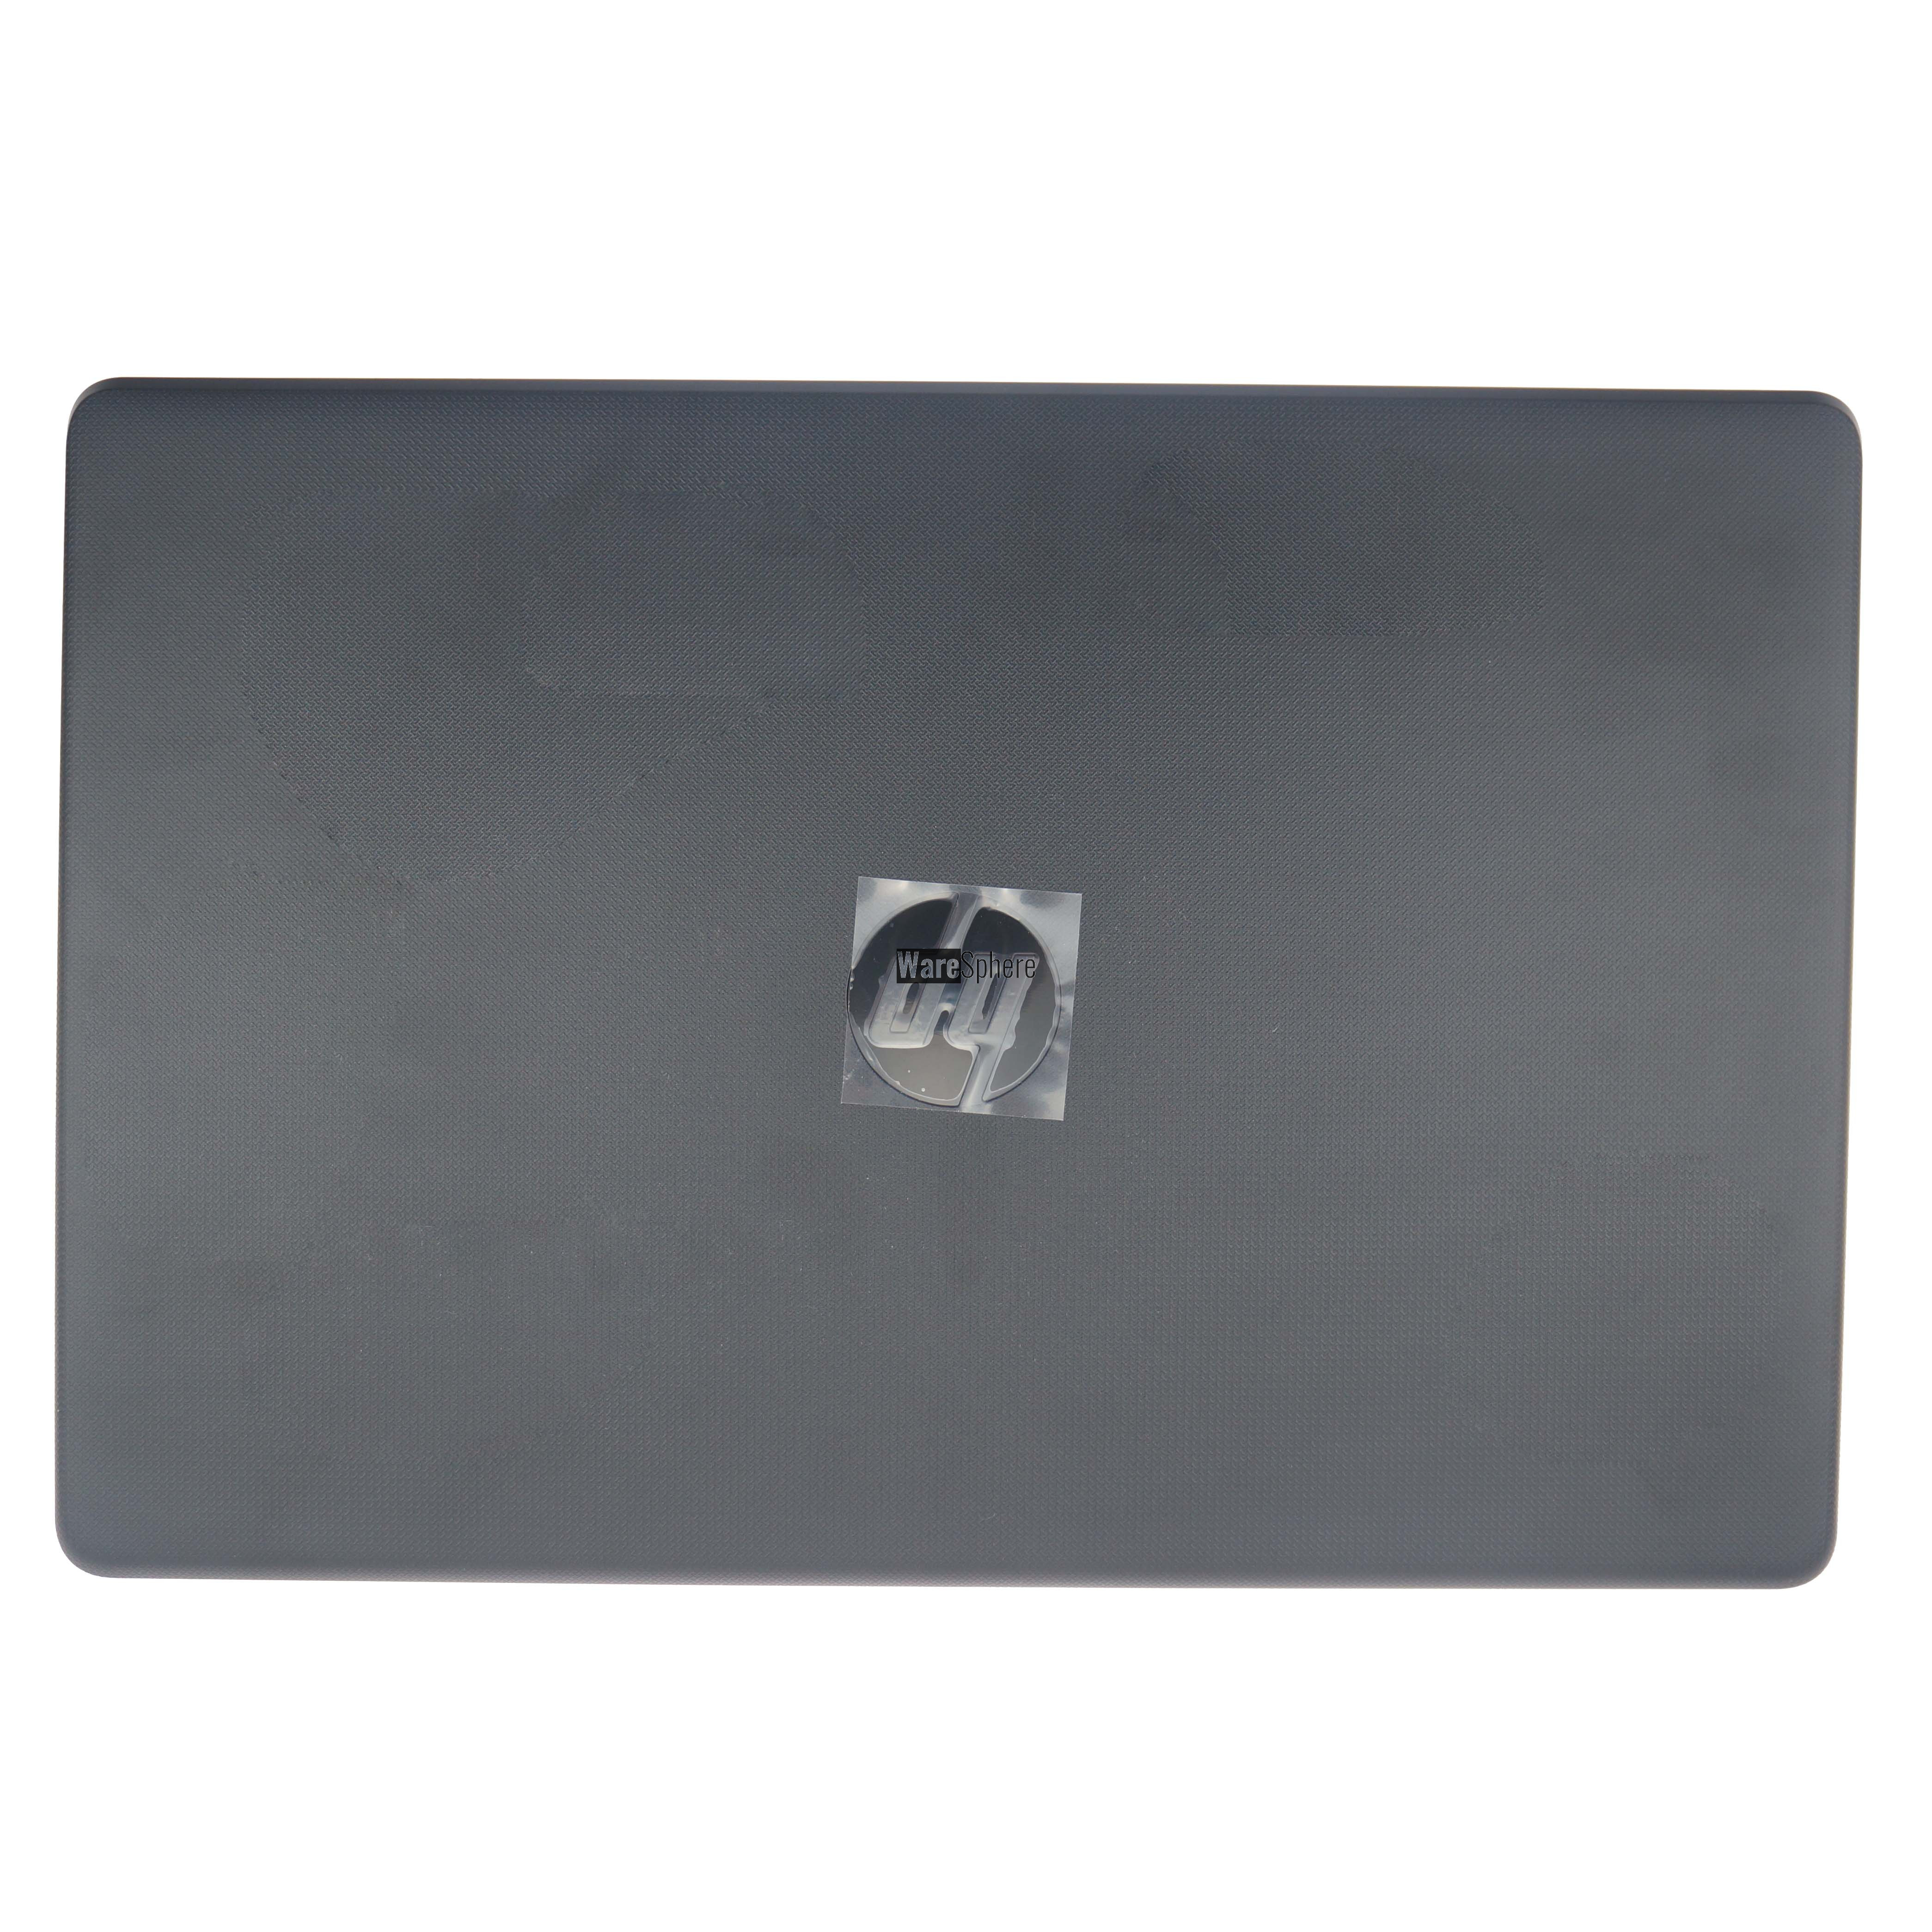 LCD Back Cover for Hp 17T-BR 17-BS 17-AK  926489-001 4600C712000219427 Black